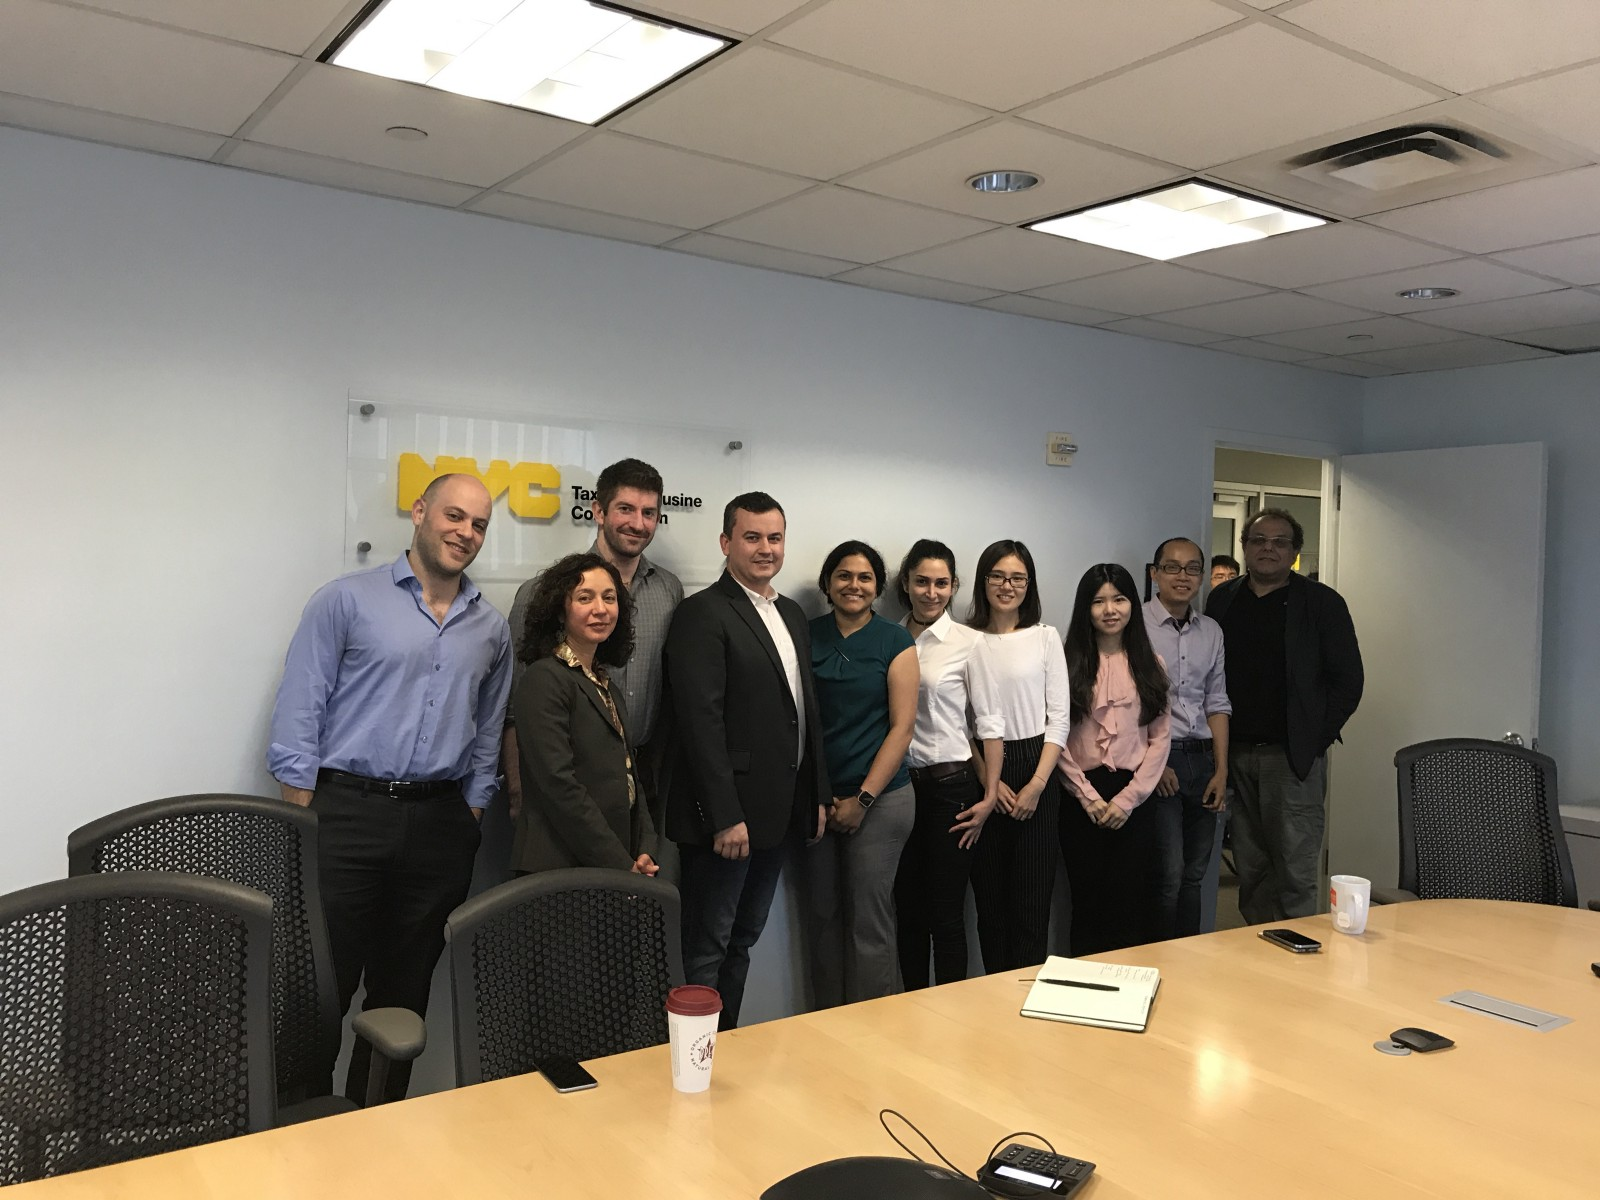 Unmet demand team. From left to right. TLC Staff: Ben Kurland, Chair Meera Joshi, Jeff Garber. Student team: Alexey Kalinin, Anita Ahmed, Pooneh Famili, Xin Tang, Ziman Zhou. Faculty advisors: Huy Vo, Kaan Ozbay.